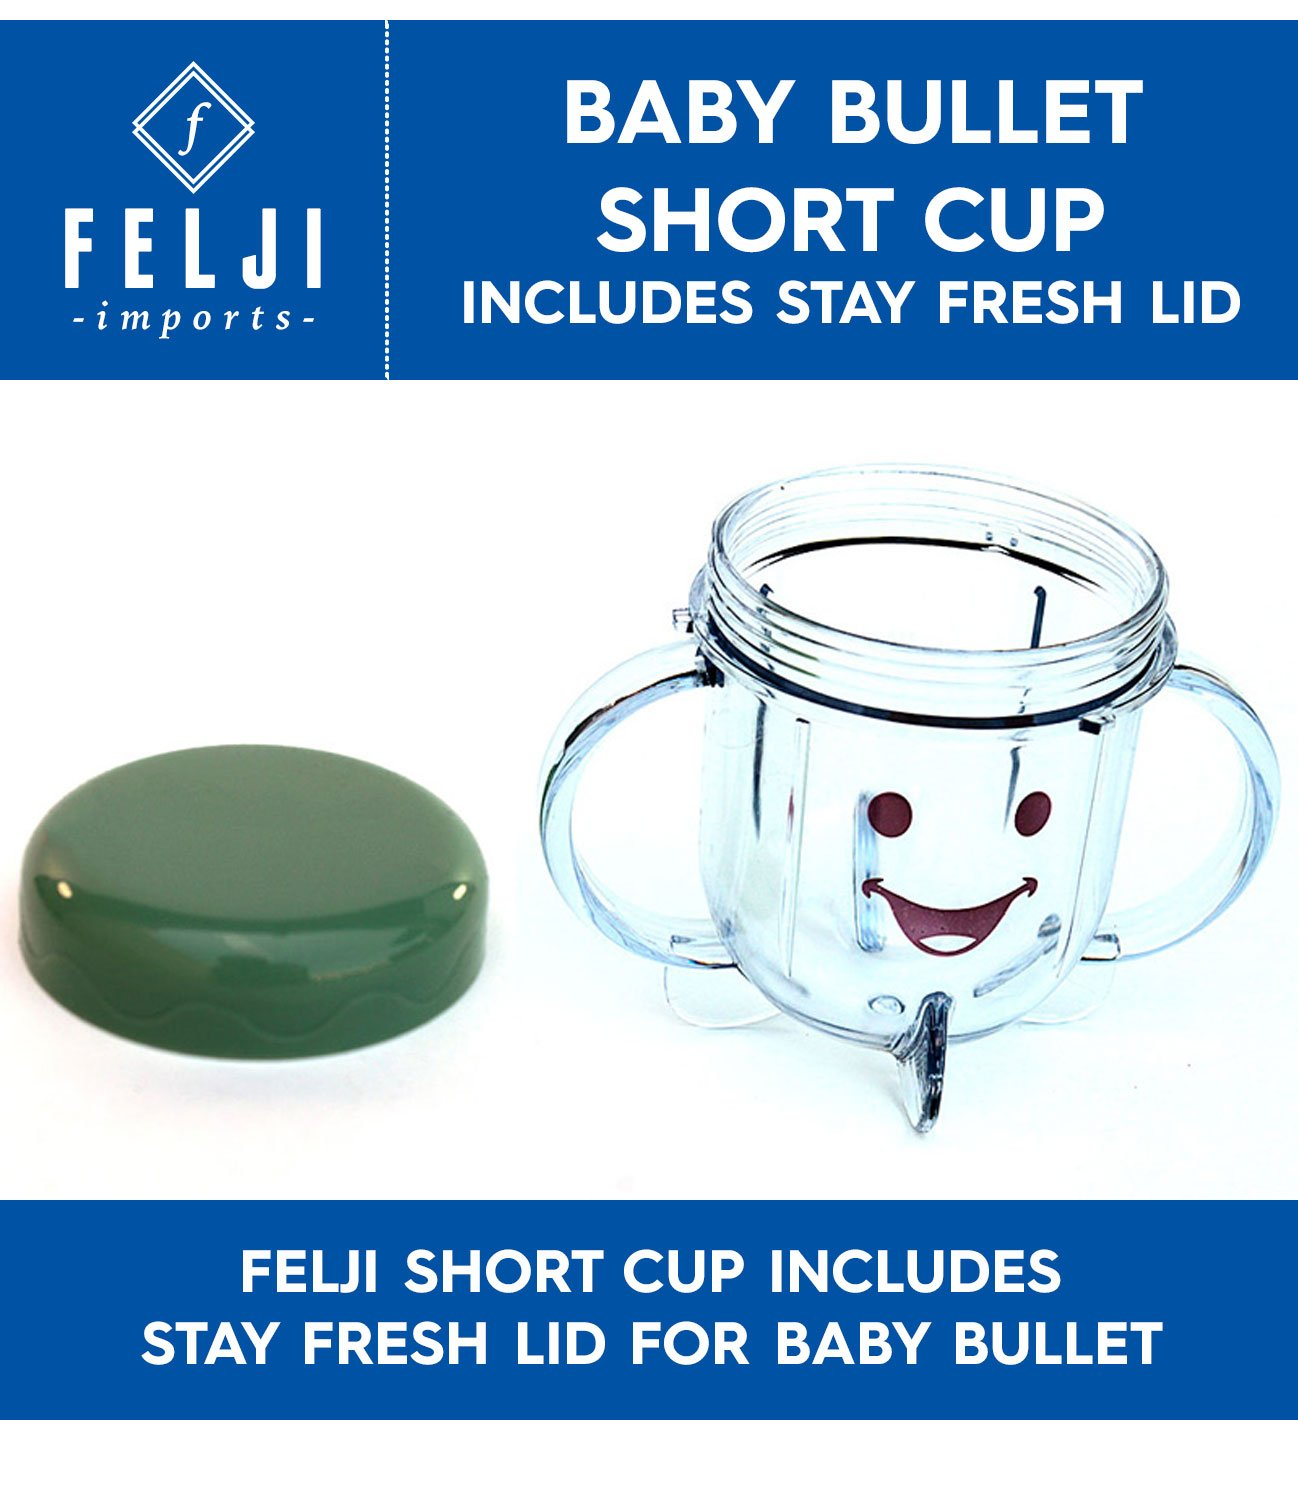 Felji Short Cup Includes Stay Fresh Lid for Baby Bullet